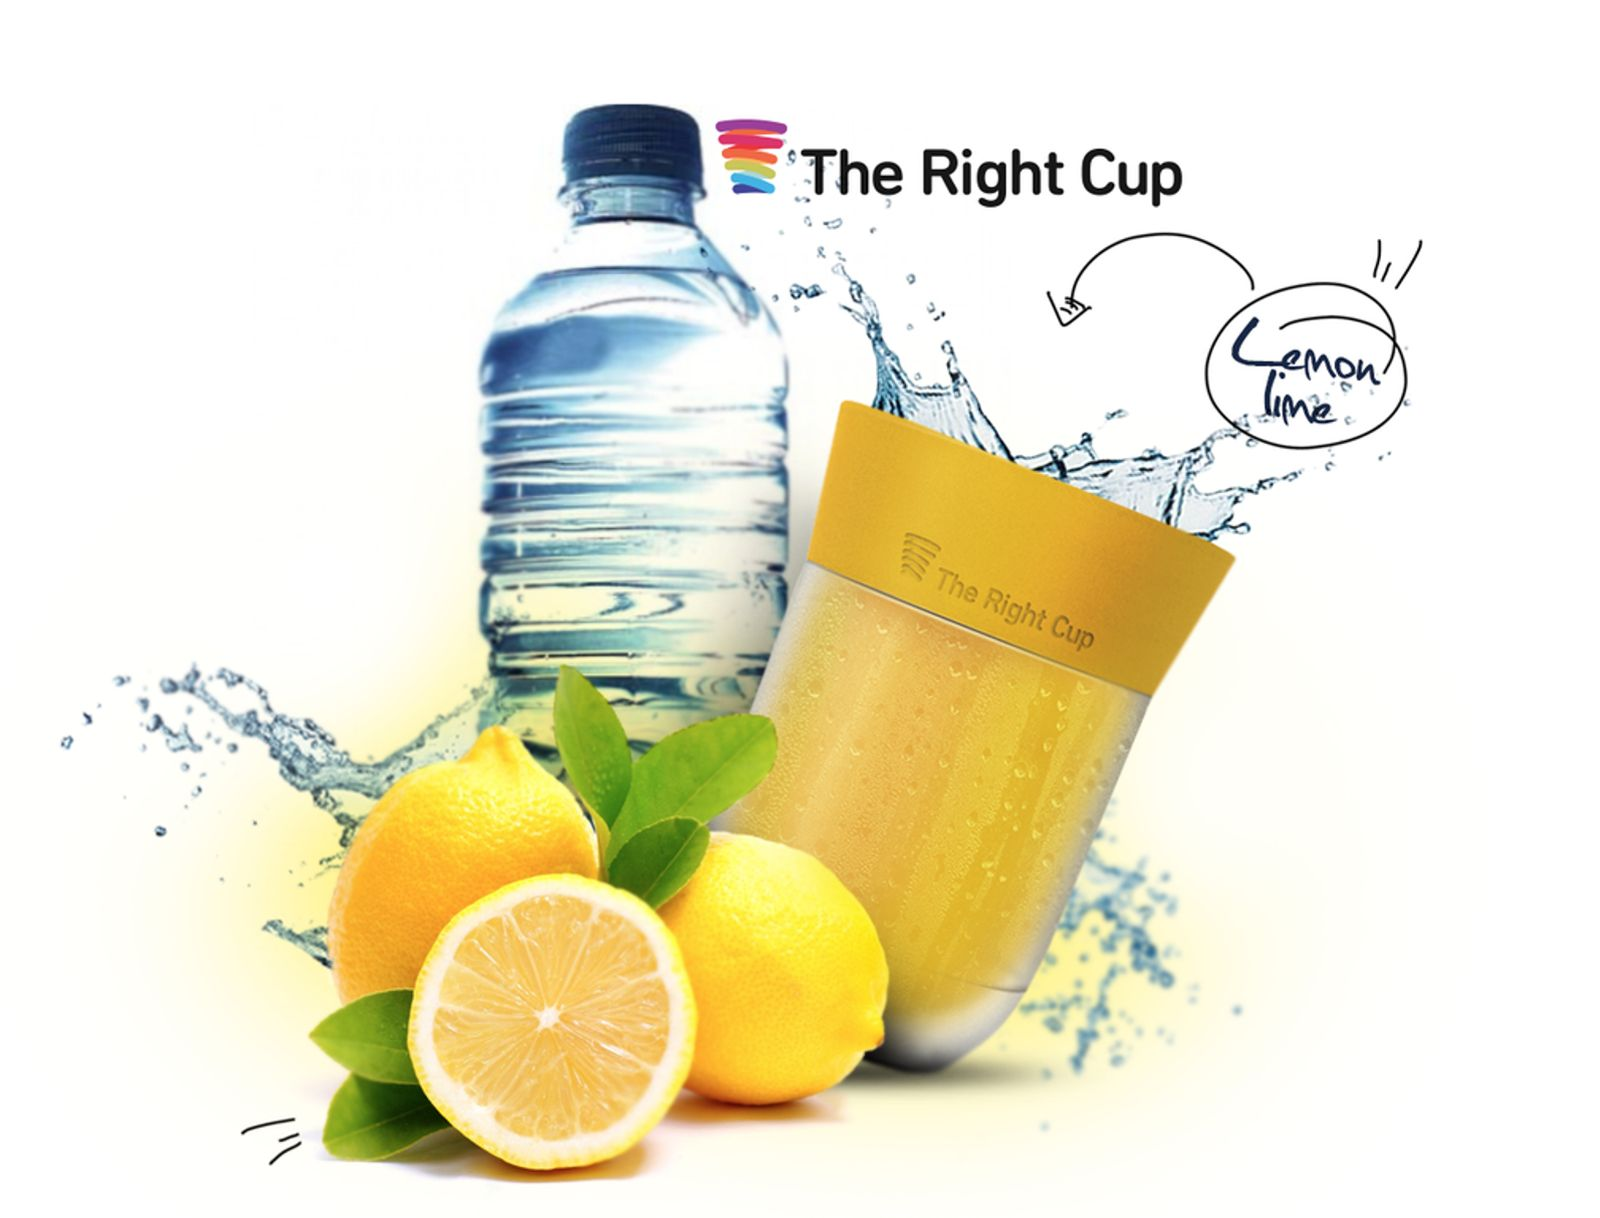 Therightcup Lemon